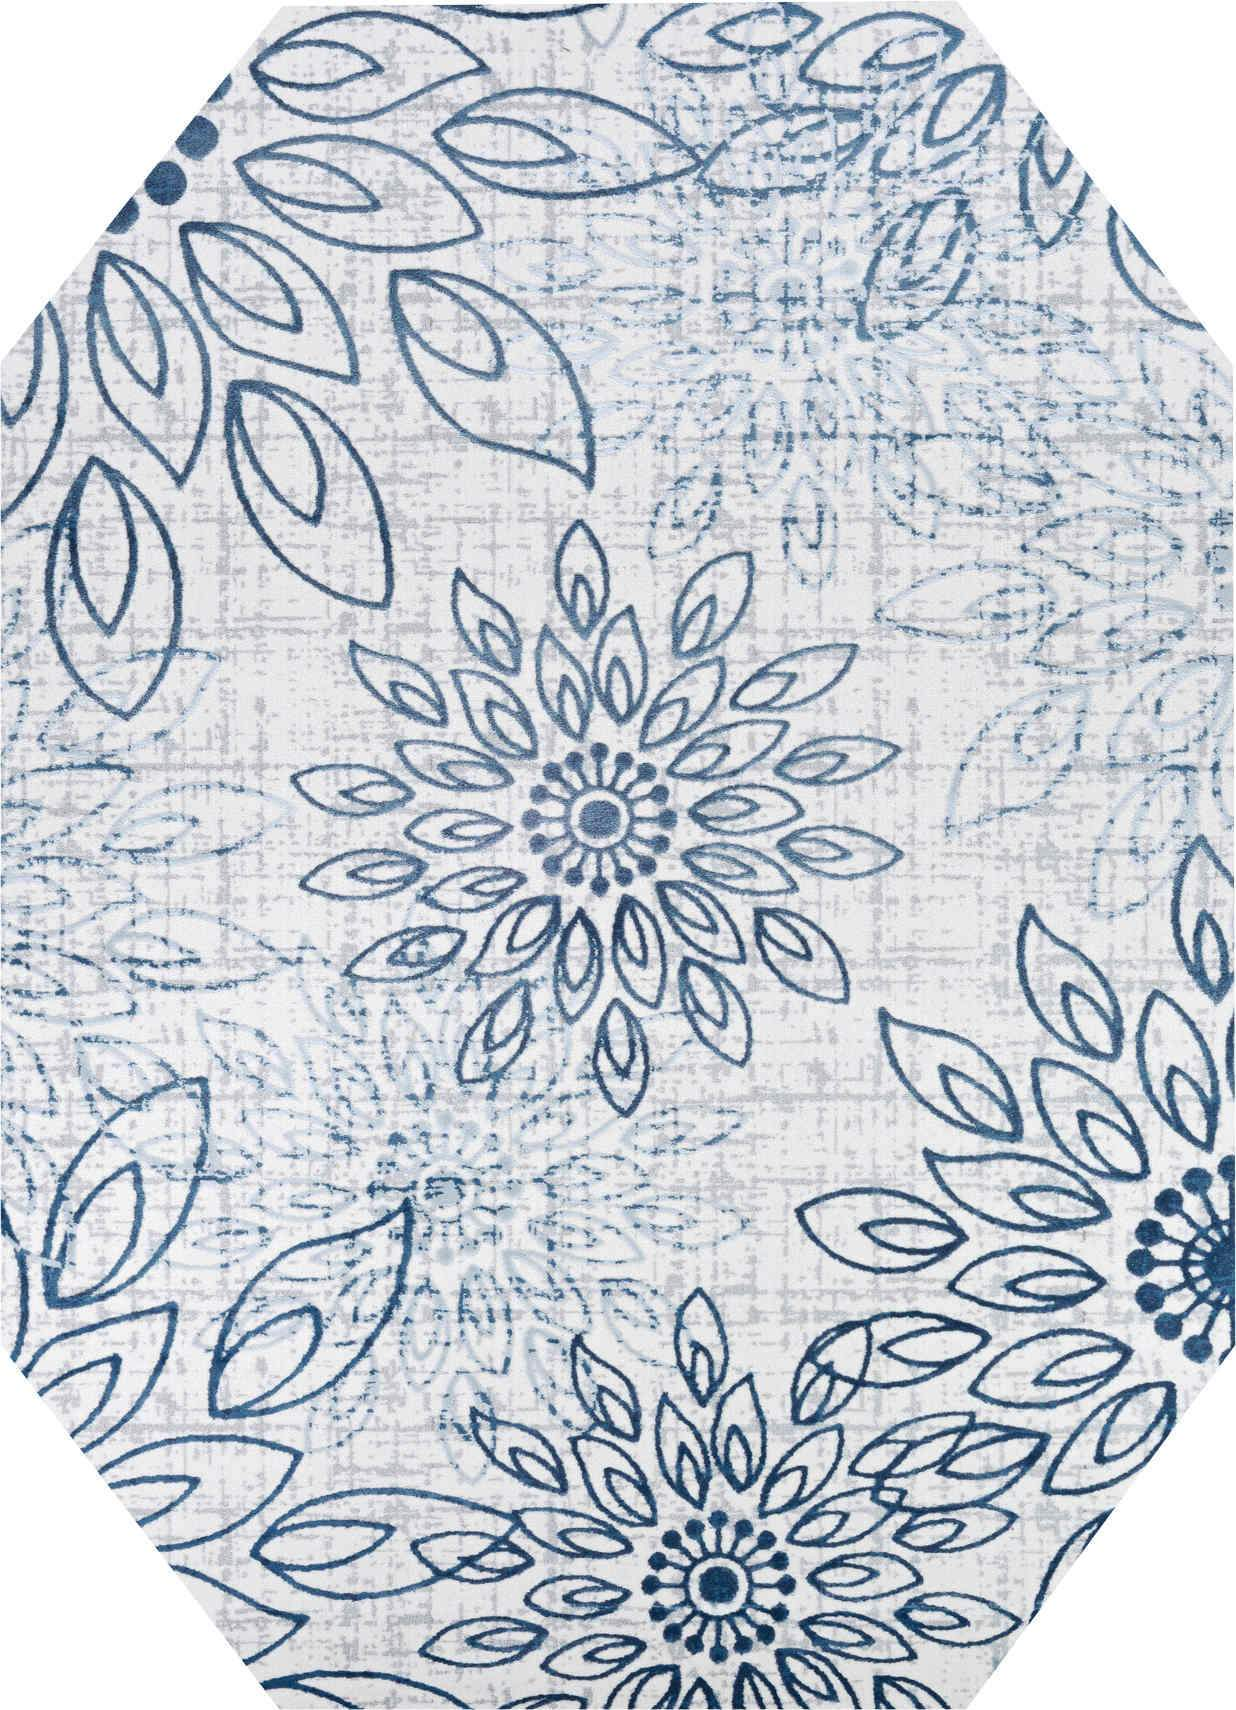 Couristan Area Rugs Calinda Summer Bliss Steel Blue-Ivory Area Rugs 5175-0758 Made In Turkey